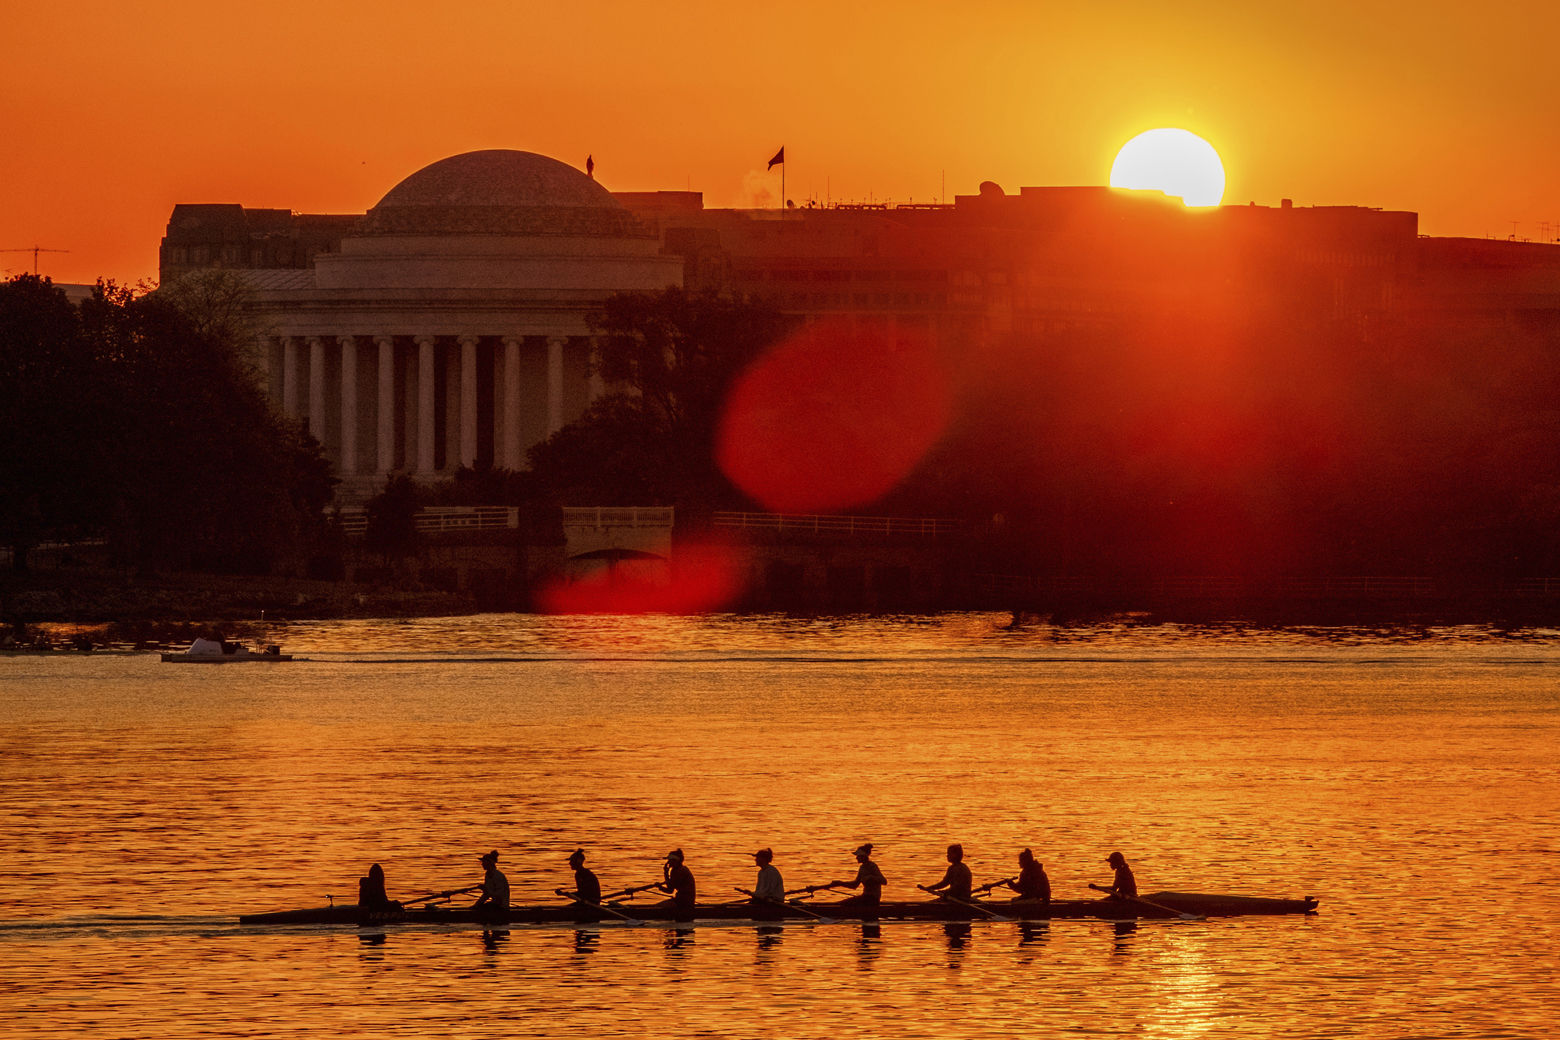 Rowers skim along the Potomac River as the sun rises over the Jefferson Memorial in Washington, Wednesday, May 2, 2018. The temperature in the Nation's Capitol is expected to reach into the upper 80's Wednesday as spring begins to give way to summer. (AP Photo/J. David Ake)